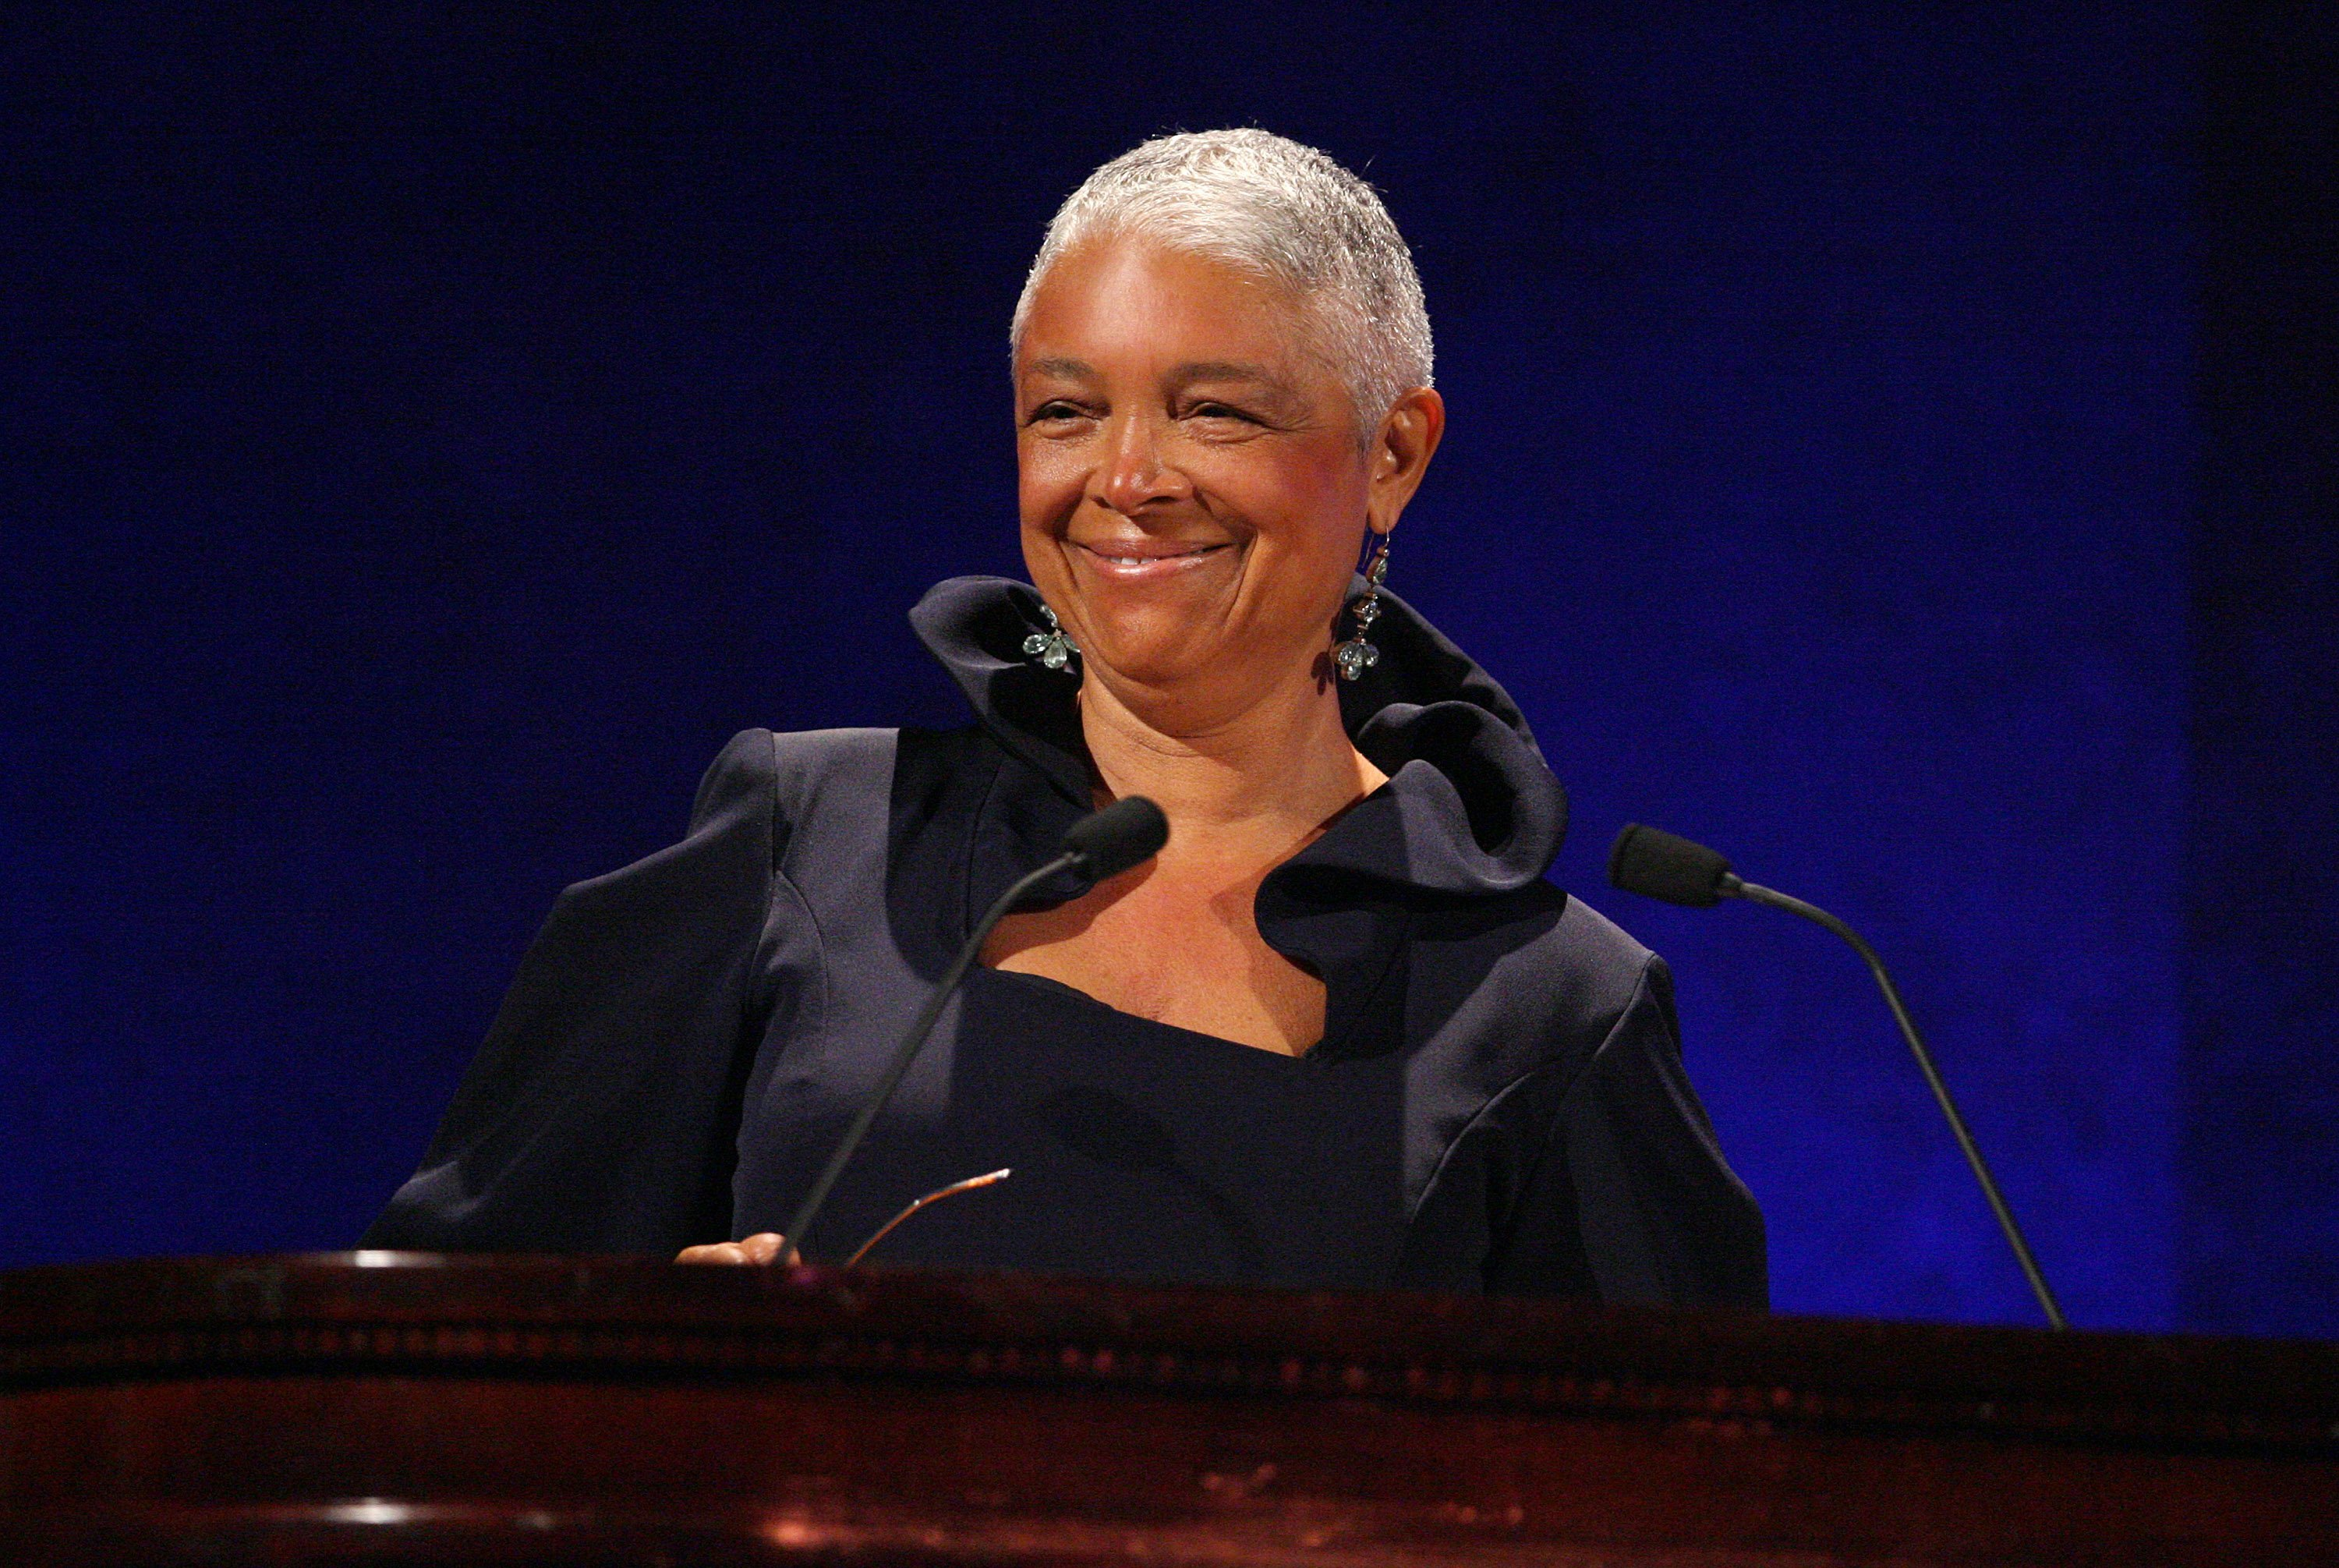 Dr. Camille Cosby speaks on stage at the 35th Anniversary of the Jackie Robinson Foundation on March 3, 2008. | Photo: GettyImages